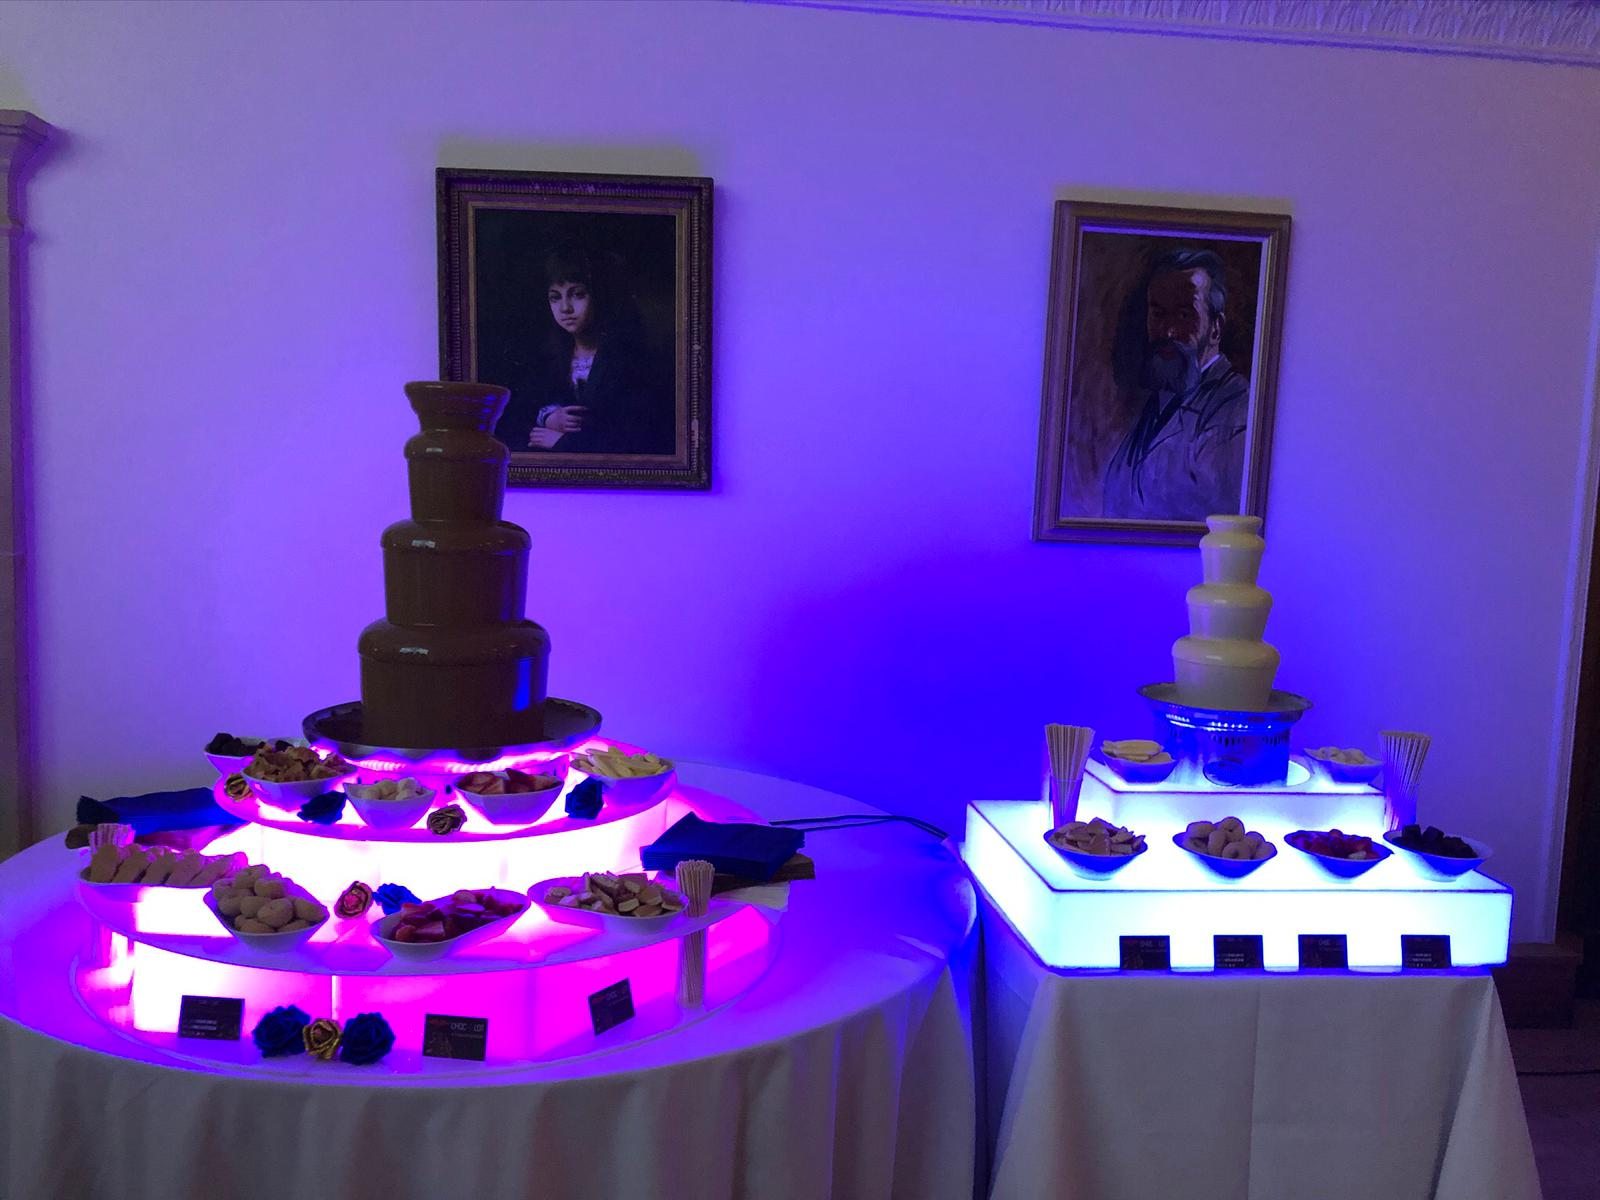 Chocolate fountain hire for kids parties in Essex - Moji Entertainer